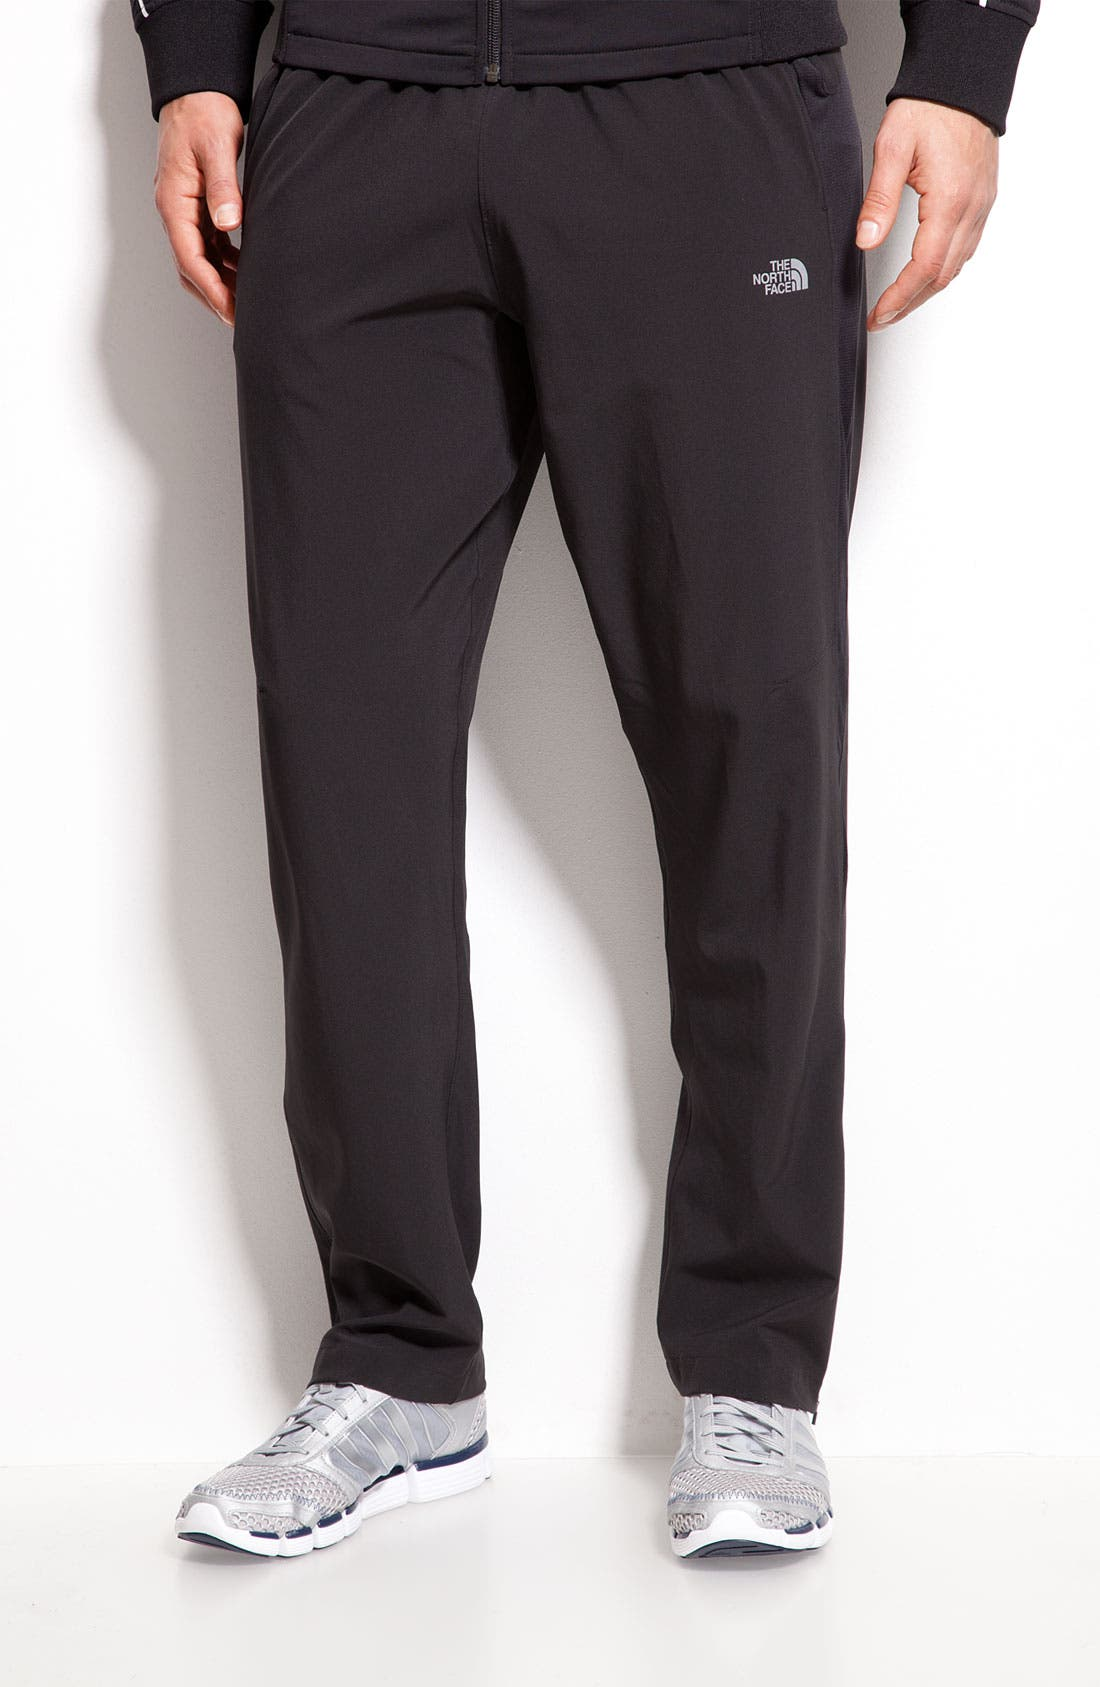 Alternate Image 1 Selected - The North Face 'Agility' Lightweight Pants